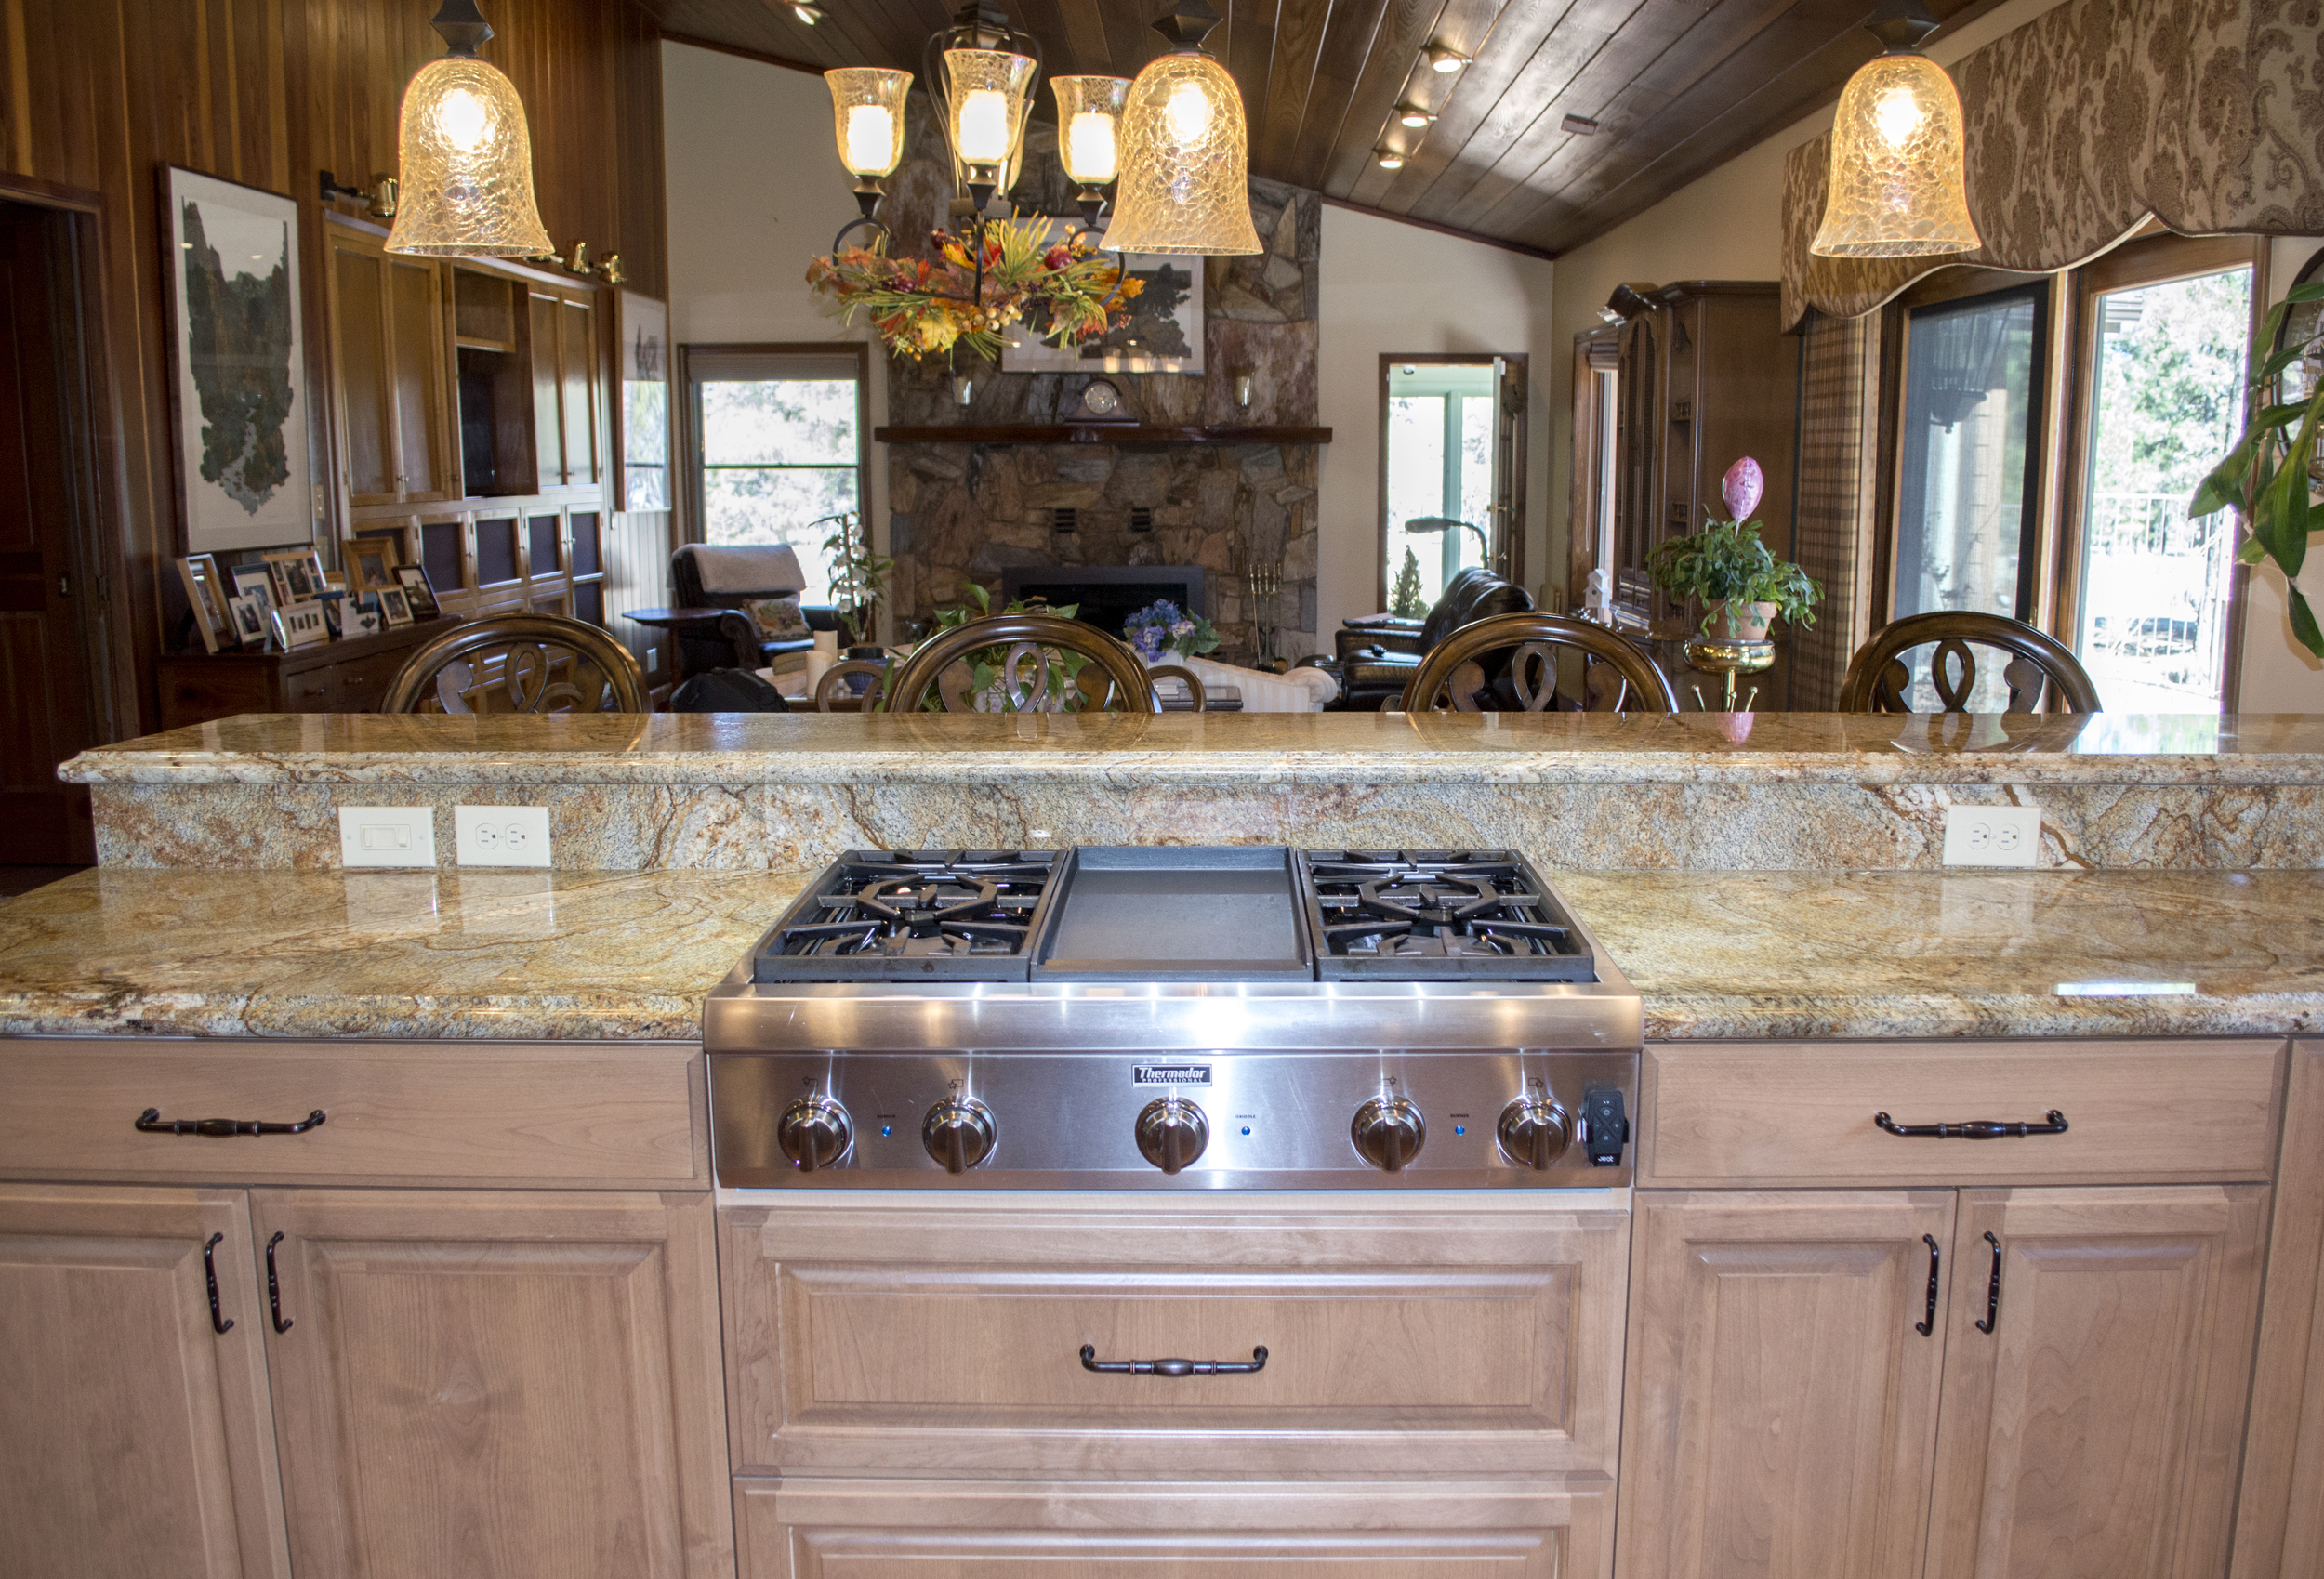 Dishwaster in a completed custom kitchen in a residential home near Flagstaff, Arizona.